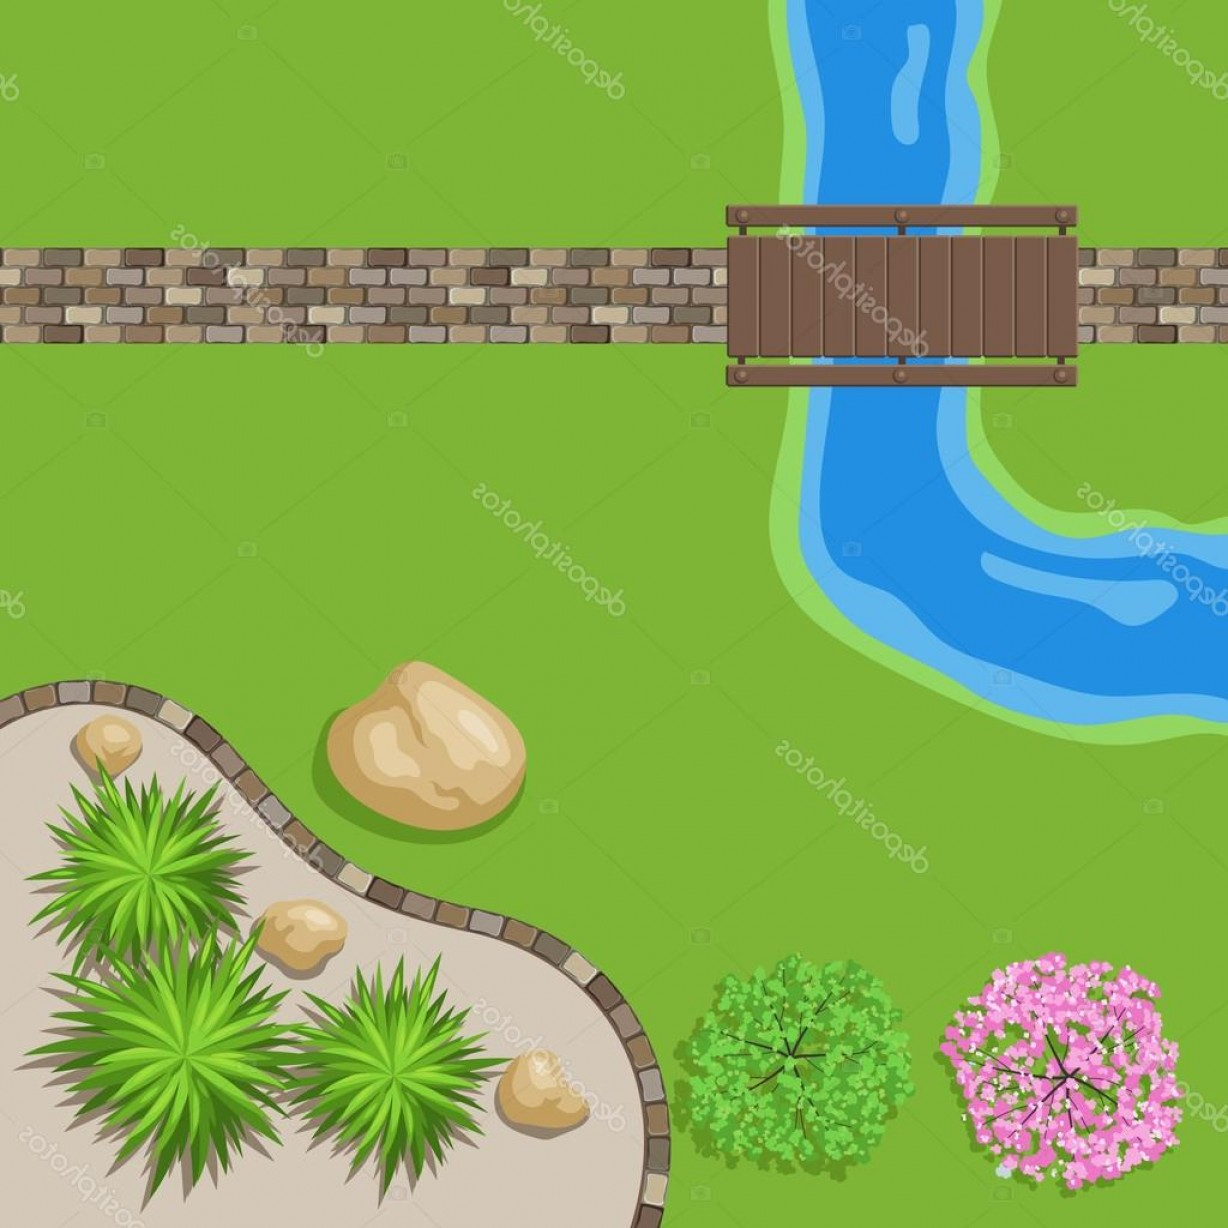 Vector Stone Landscaping: Stock Illustration Top View Landscape Garden